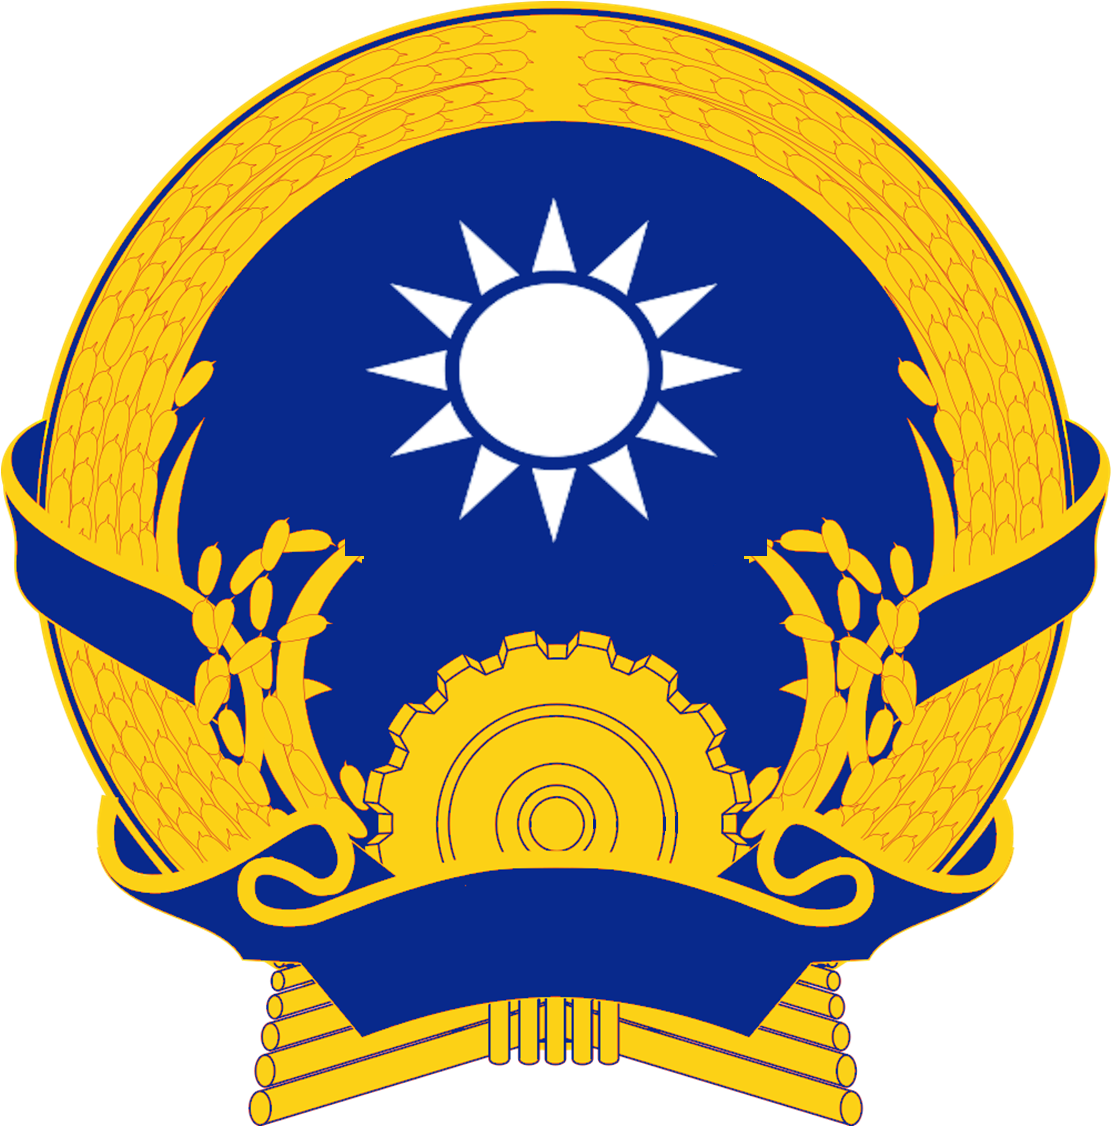 Circle arms png. Image coat of indochina